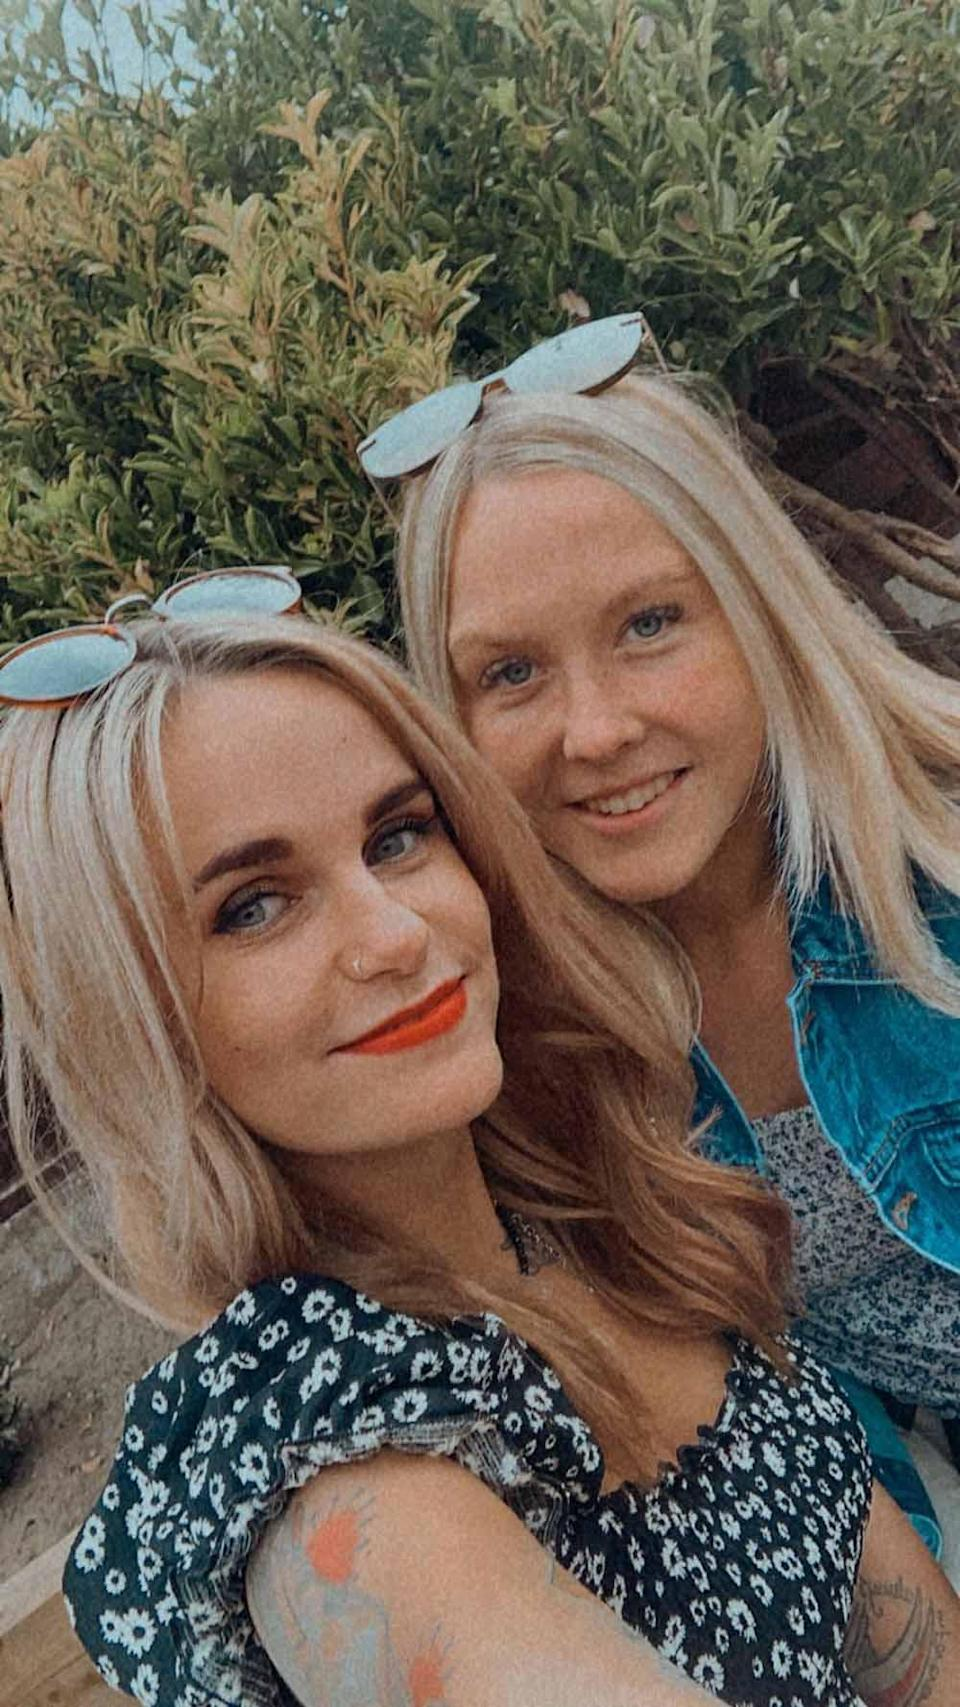 Kerrie at home with her friend Charlotte in early summer 2021. PA REAL LIFE/ COLLECT